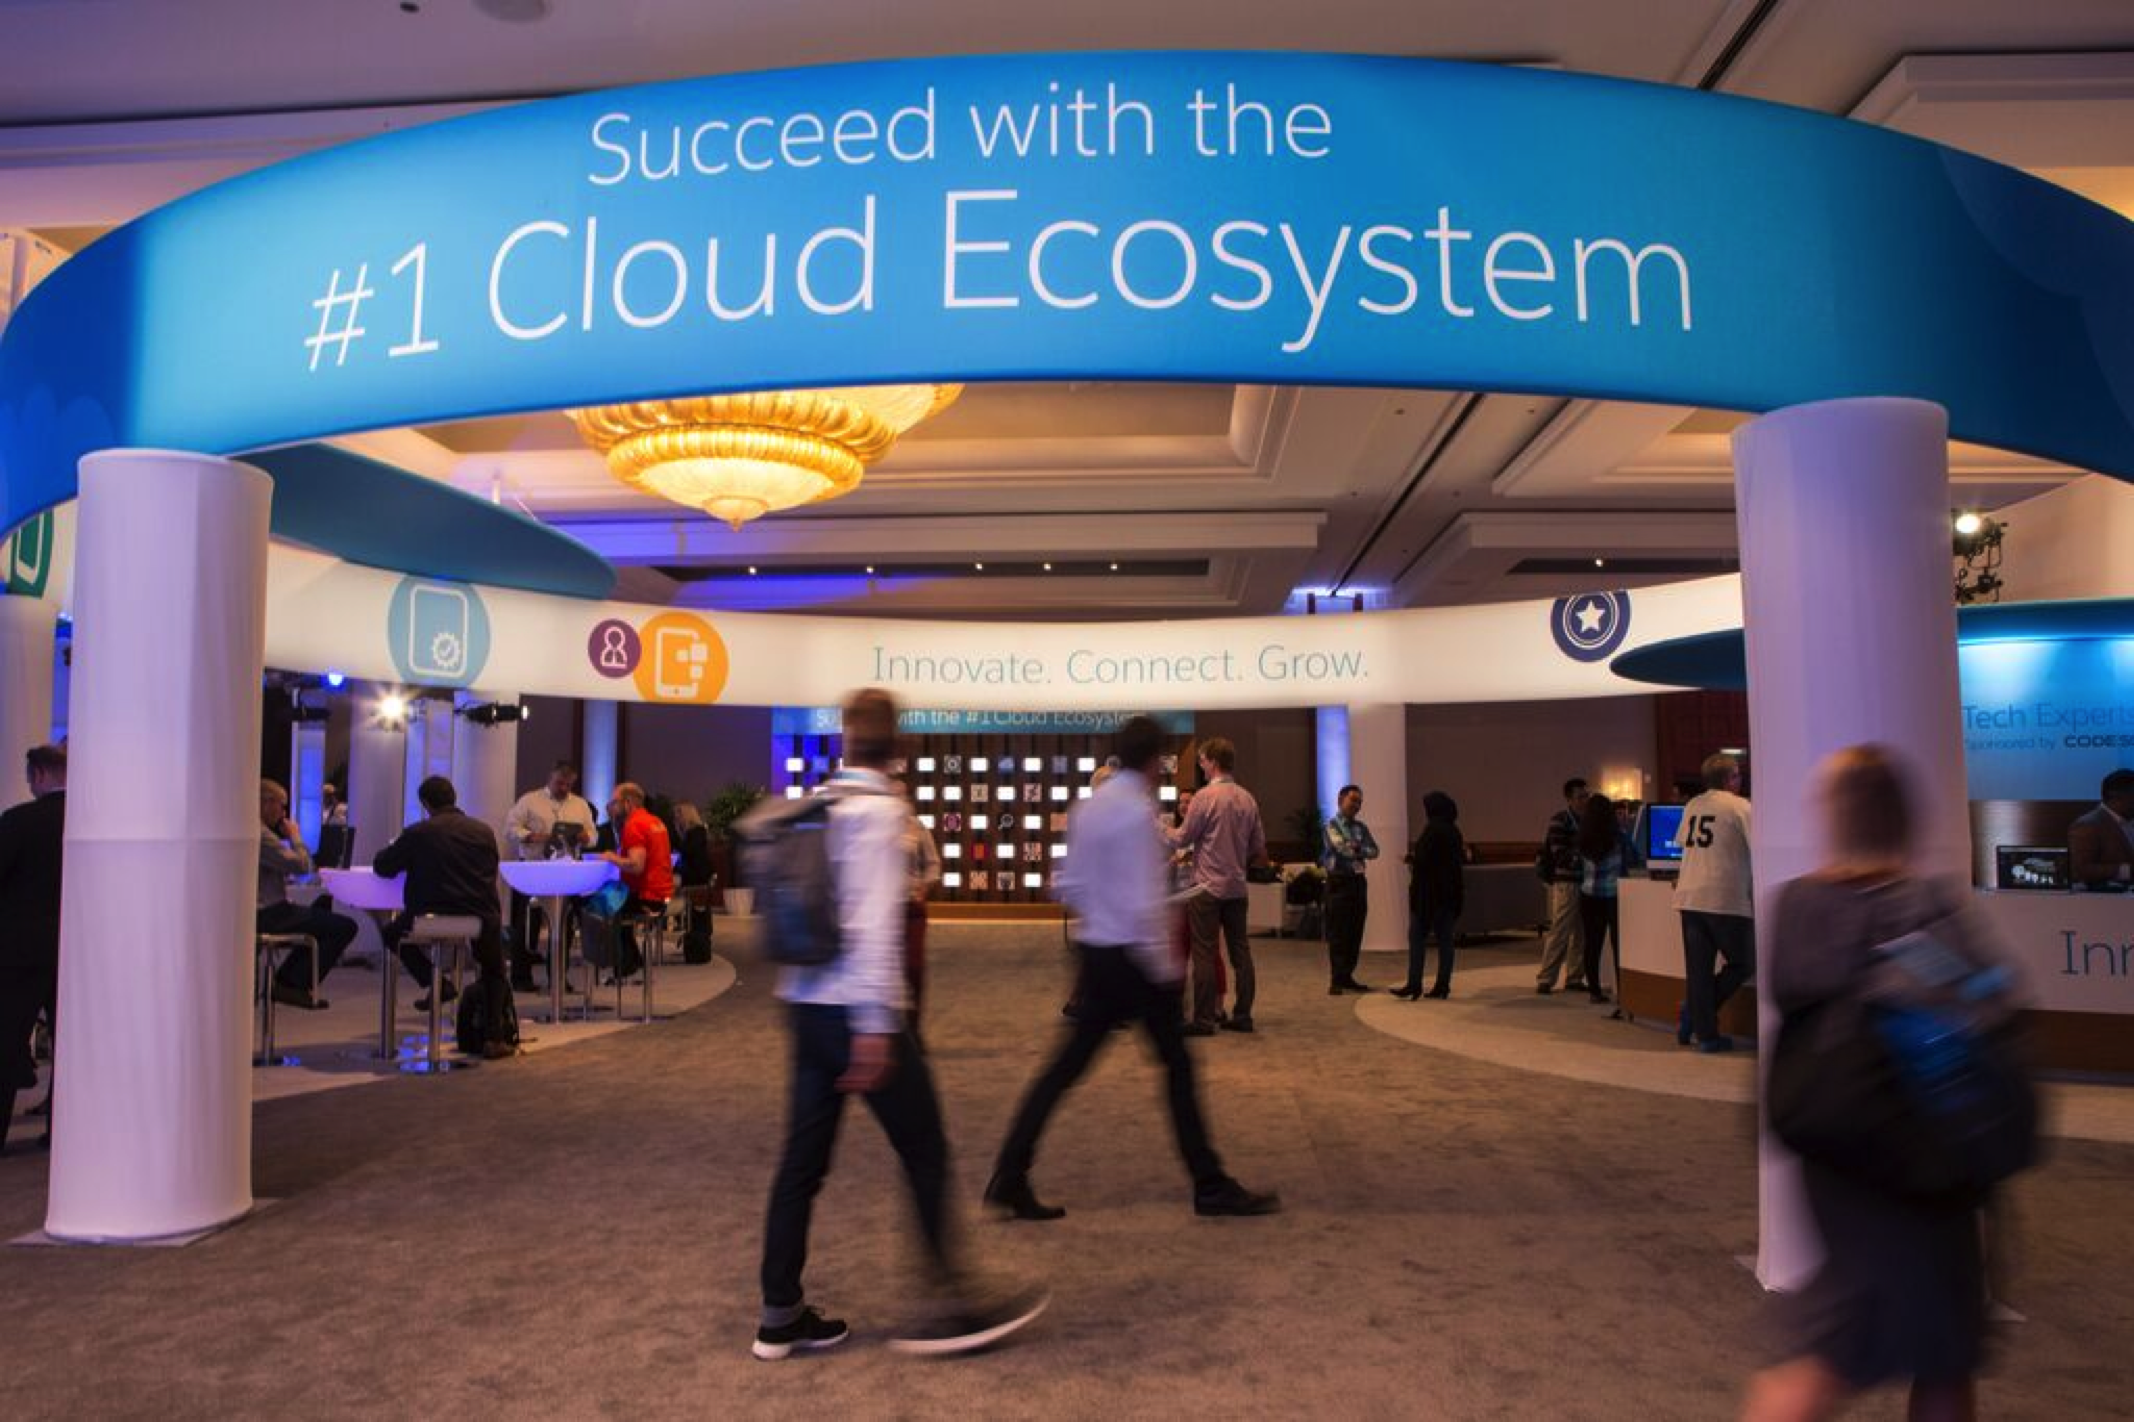 New Partner Resources, Momentum, and Giving Back Take Center Stage at Dreamforce '15